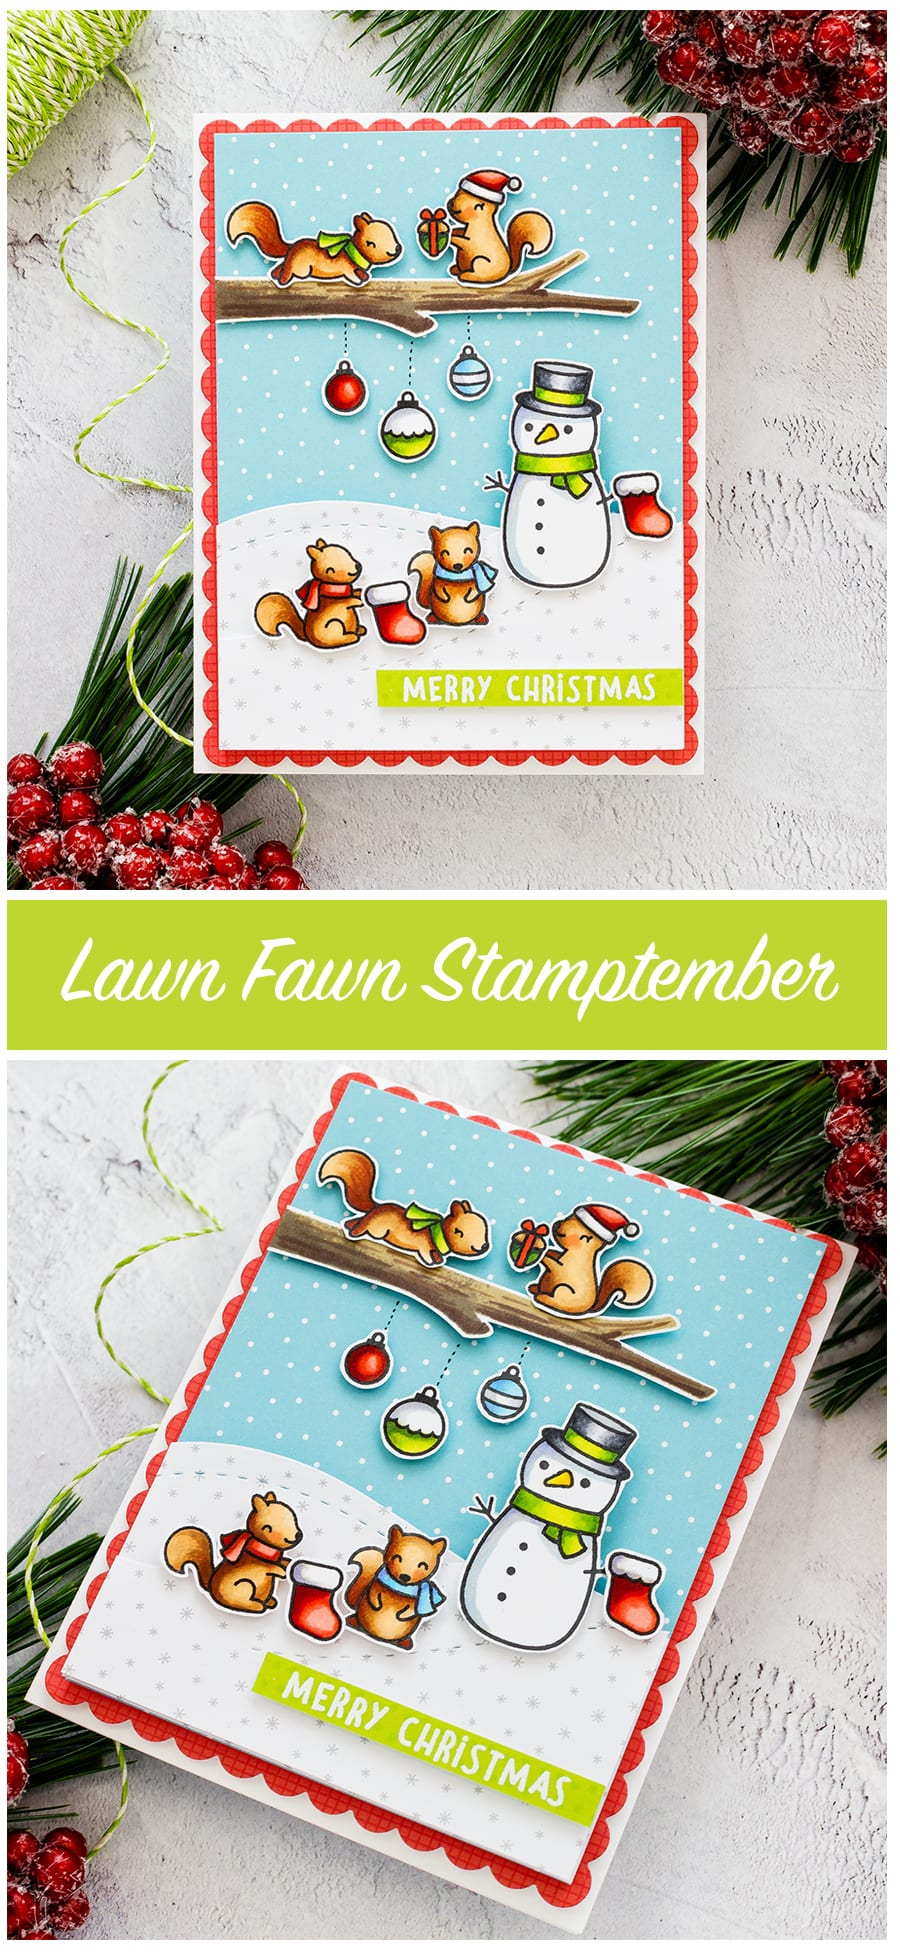 Christmas handmade cute critter cards by Debby Hughes using Lawn Fawn STAMPtember set. Find out more here: https://limedoodledesign.com/2018/09/lawn-fawn-stamptember-reveal-wheel/